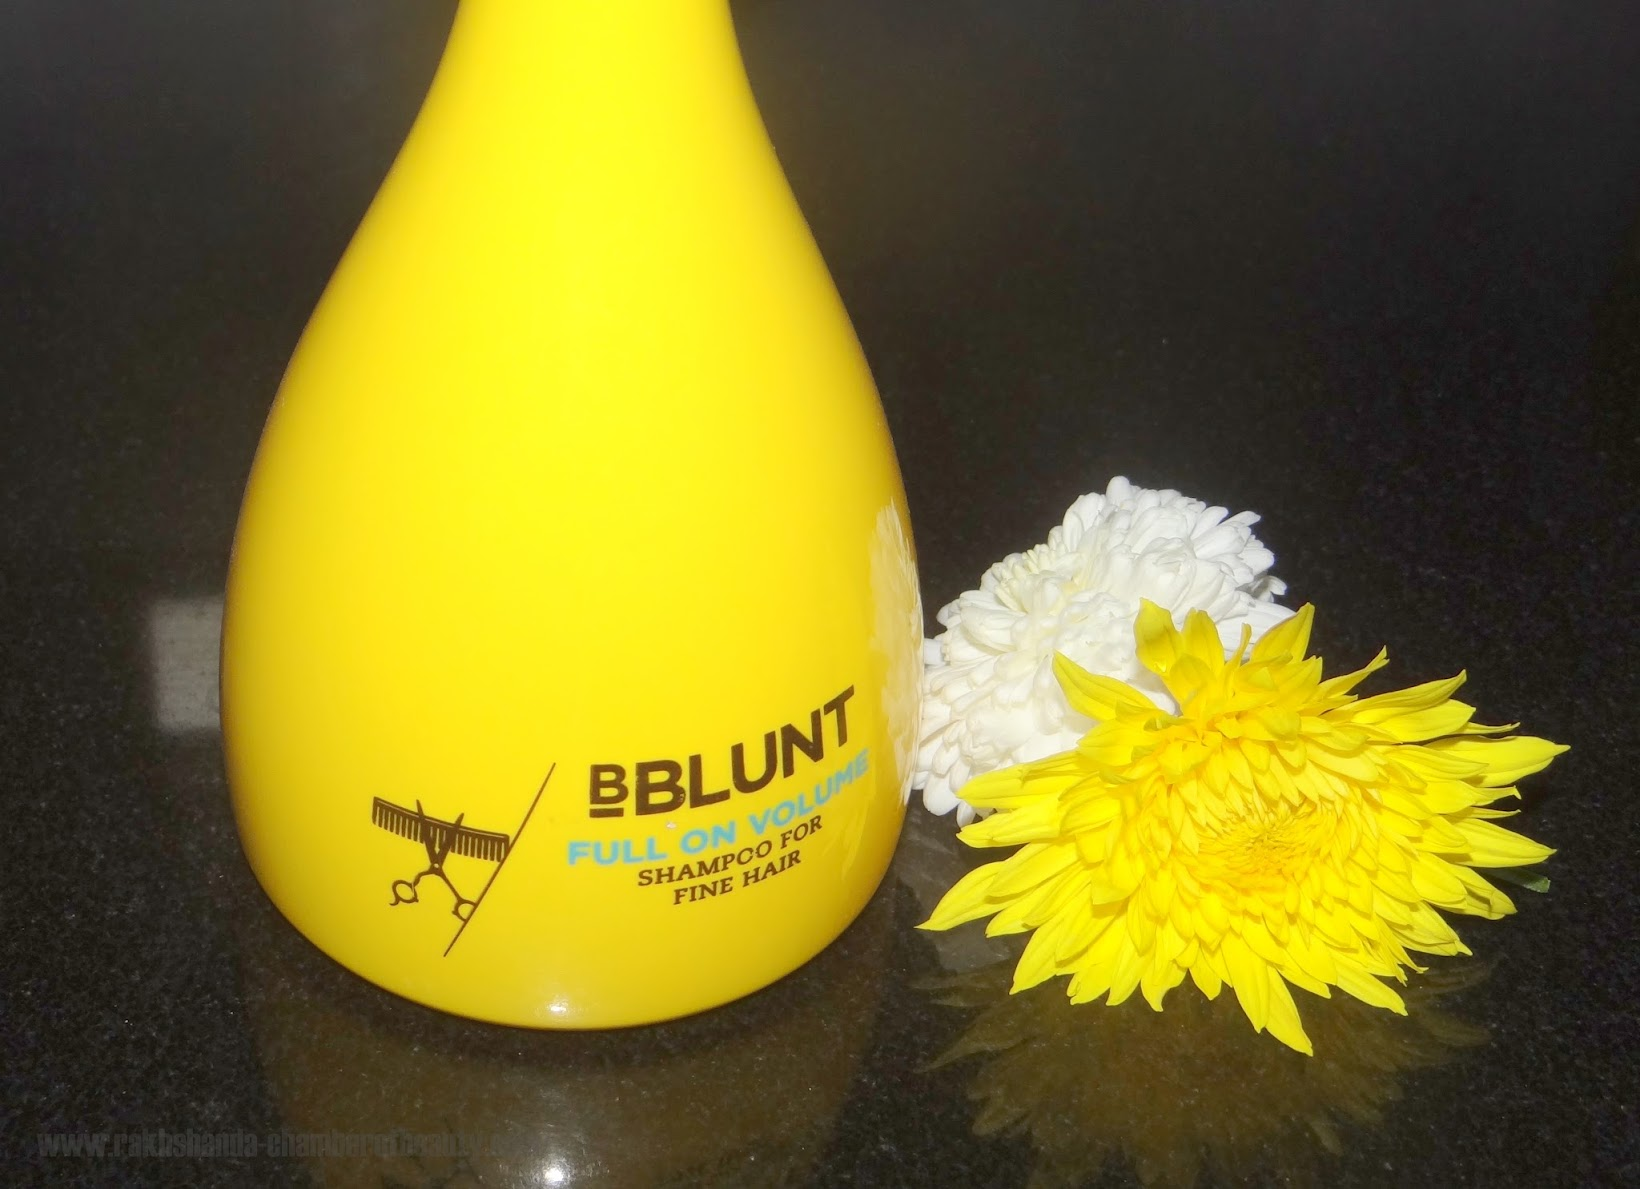 BBlunt Full On Volume Shampoo For Fine Hair Review, BBlunt hair products, shampoo for thin hair in India, Indian beauty blogger